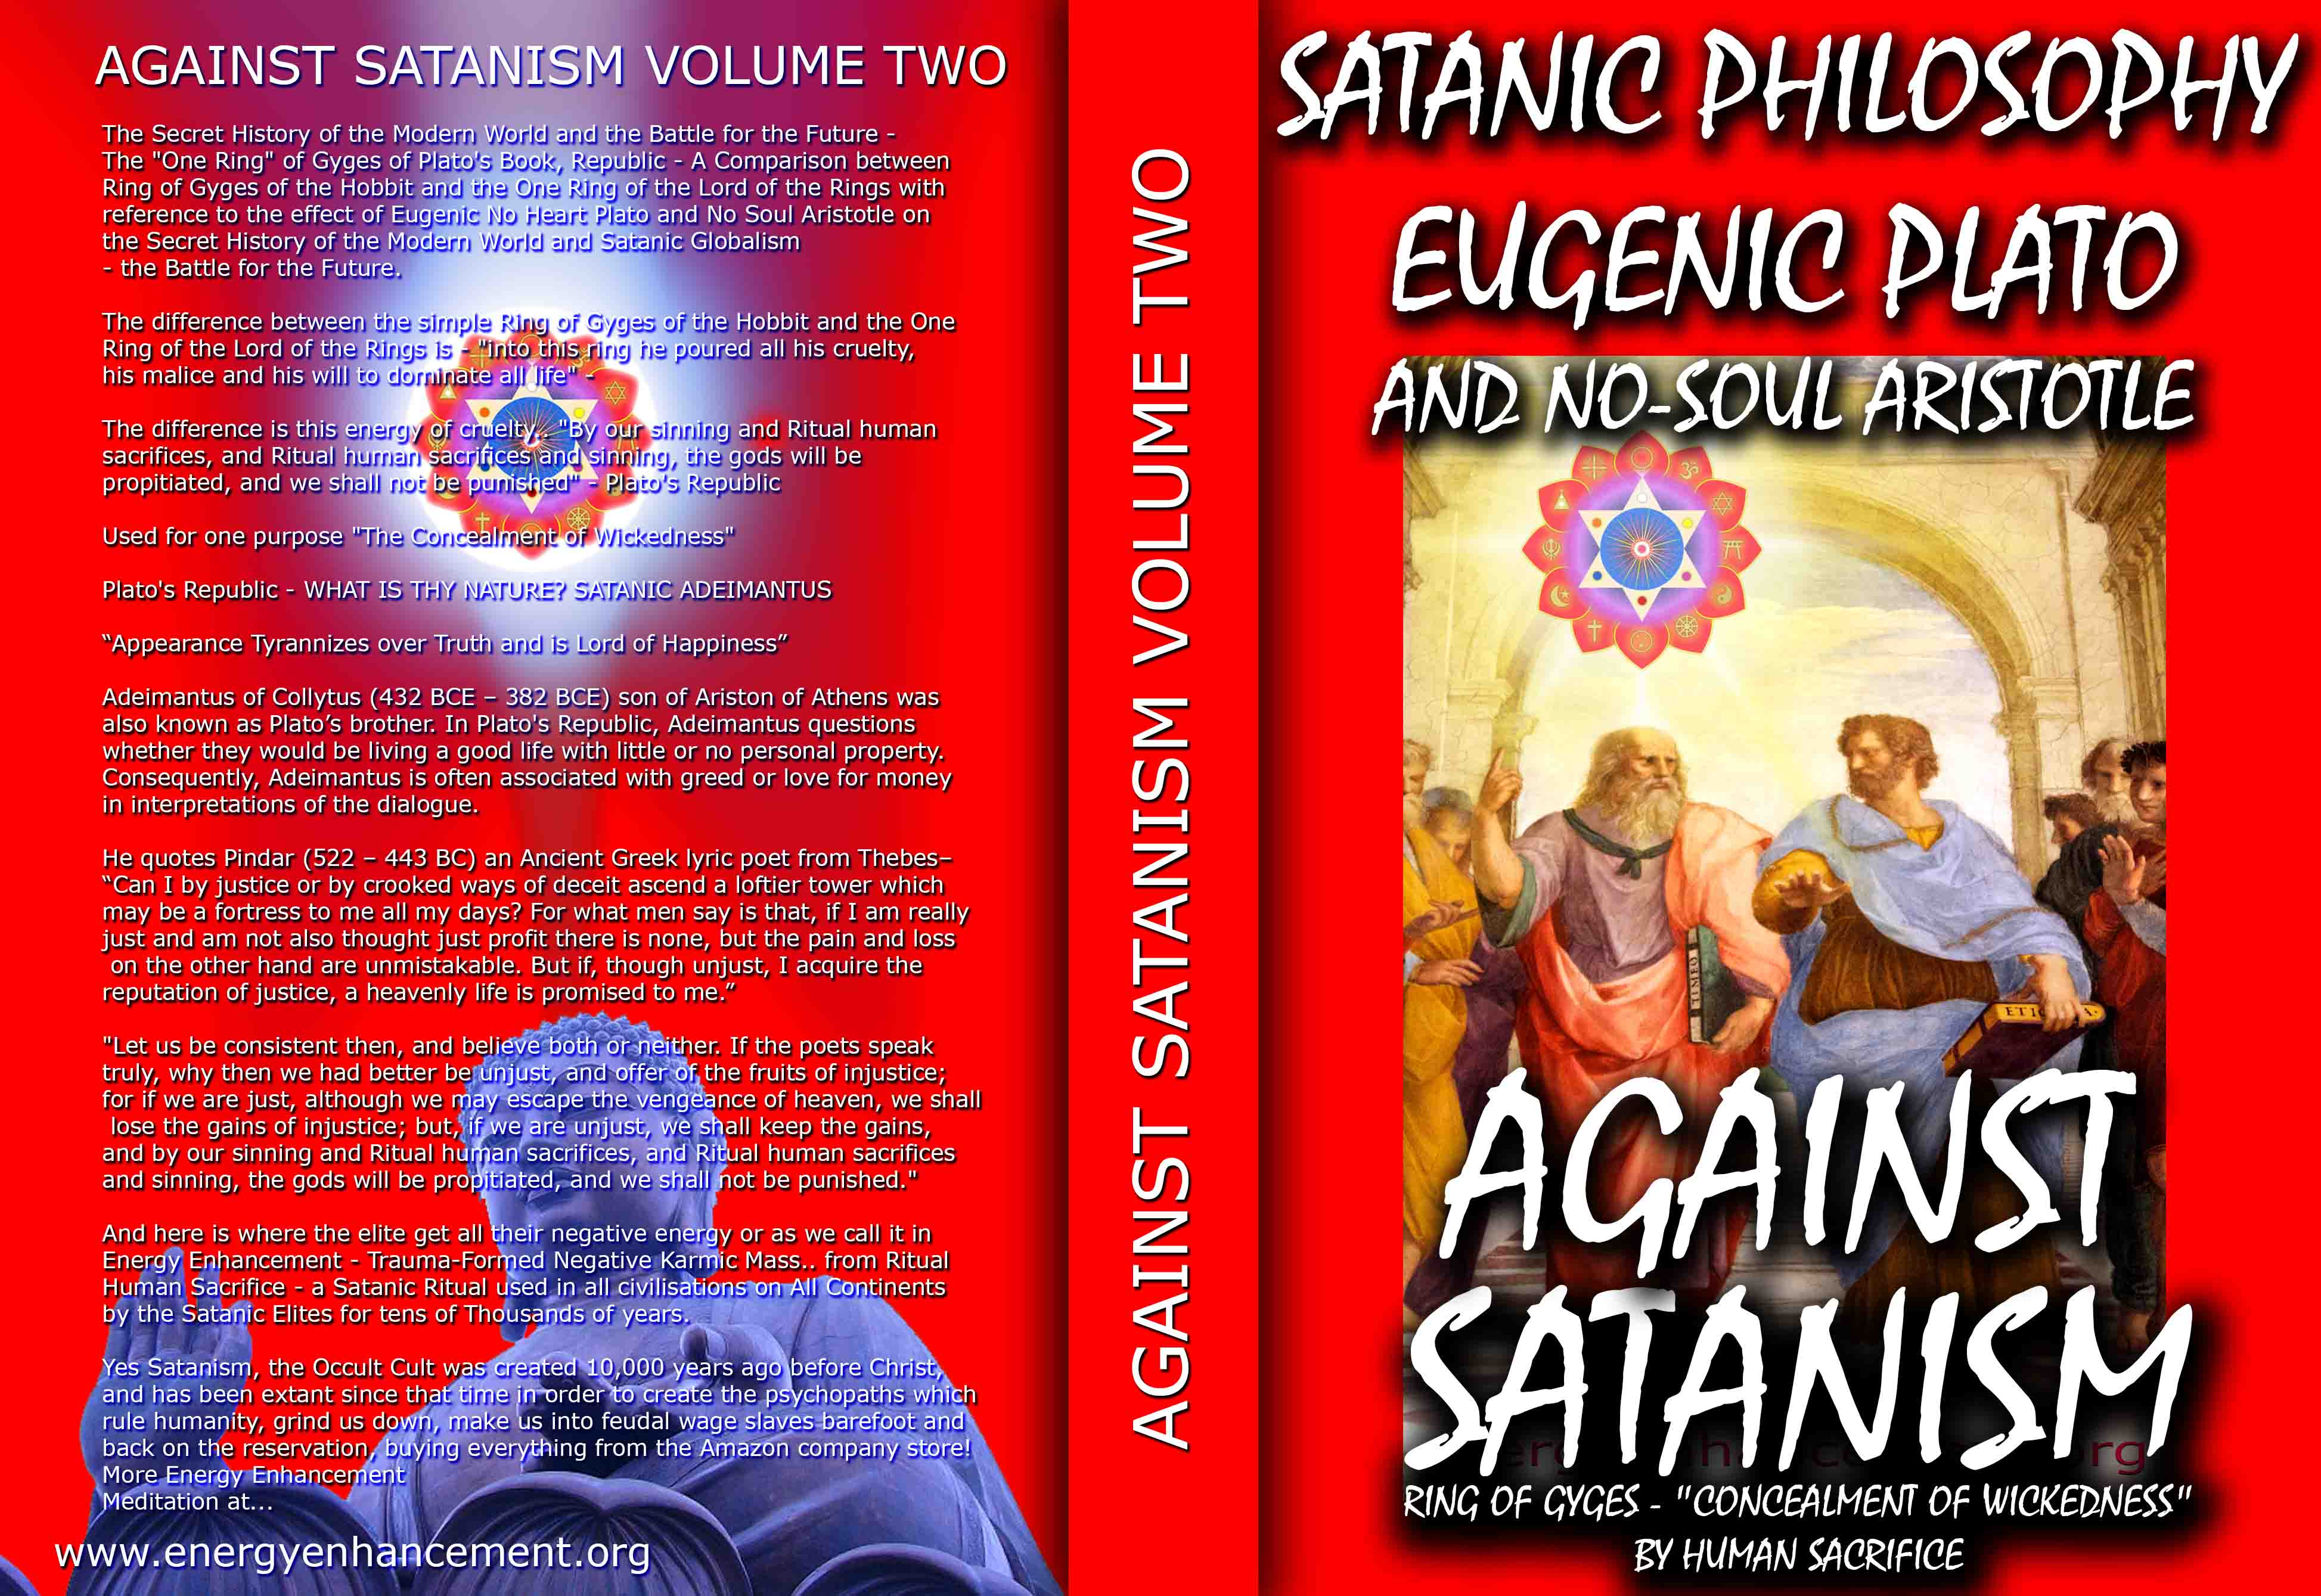 Description: Description: C:\wnew\Sacred-Energy\Against-Satanism-Volume-2\Satanism-Book-Vol-2-final.jpg